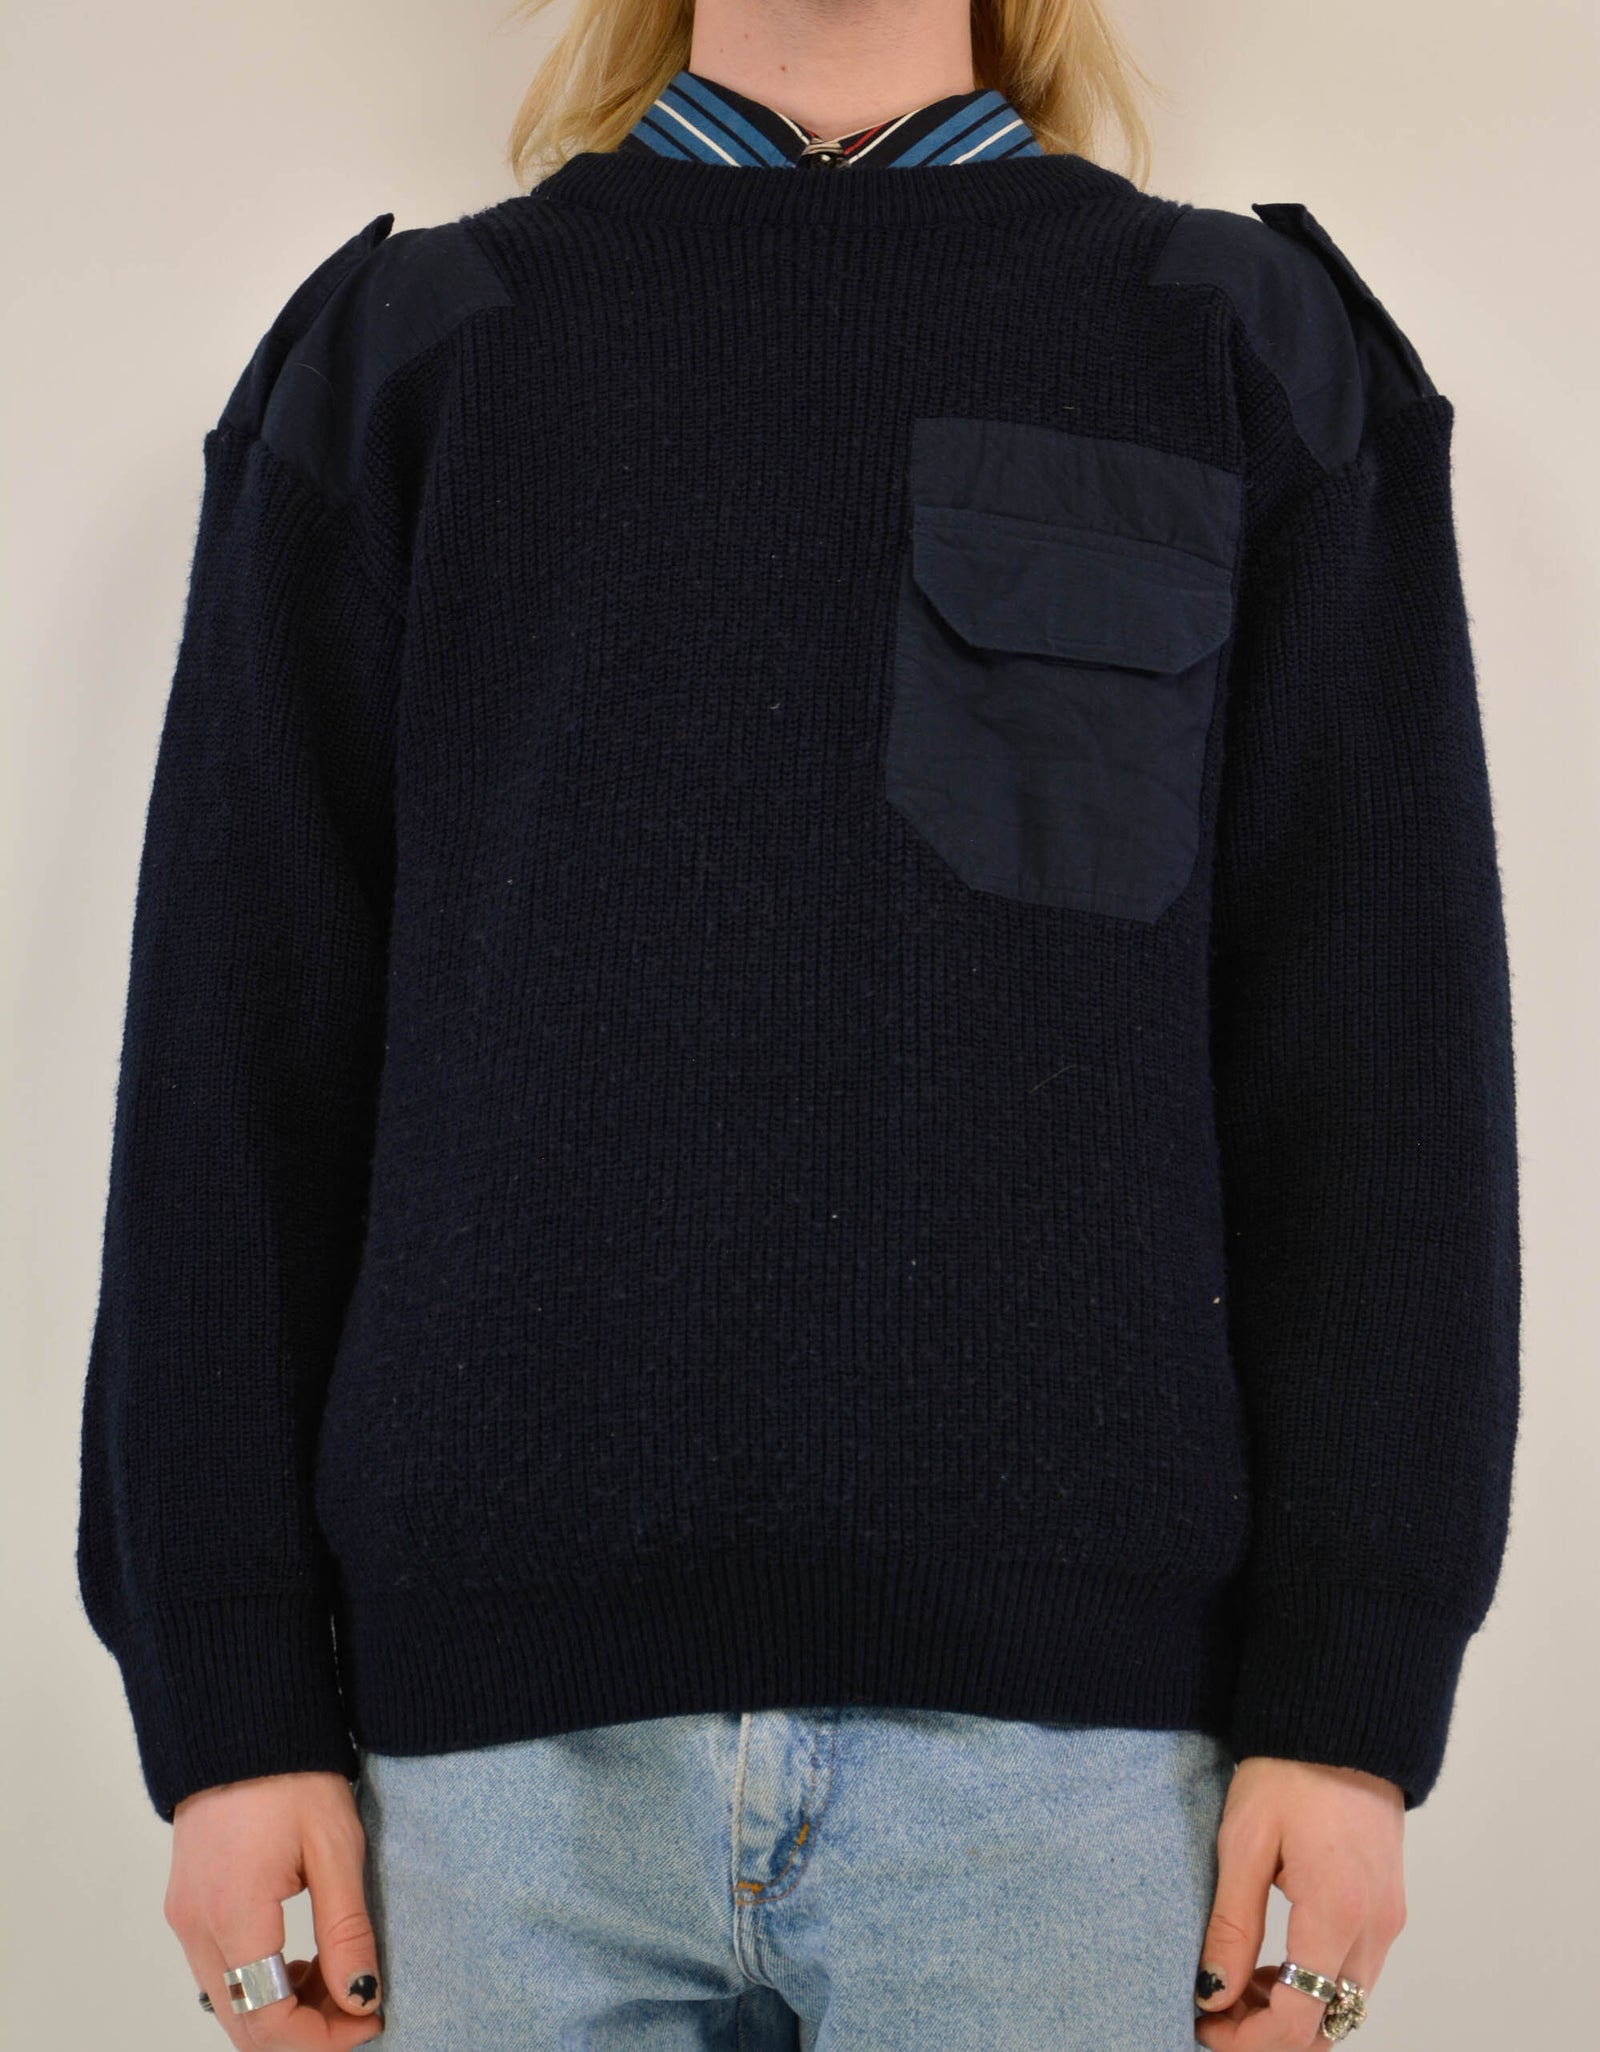 Outdoor sweater - PICKNWEIGHT - VINTAGE KILO STORE